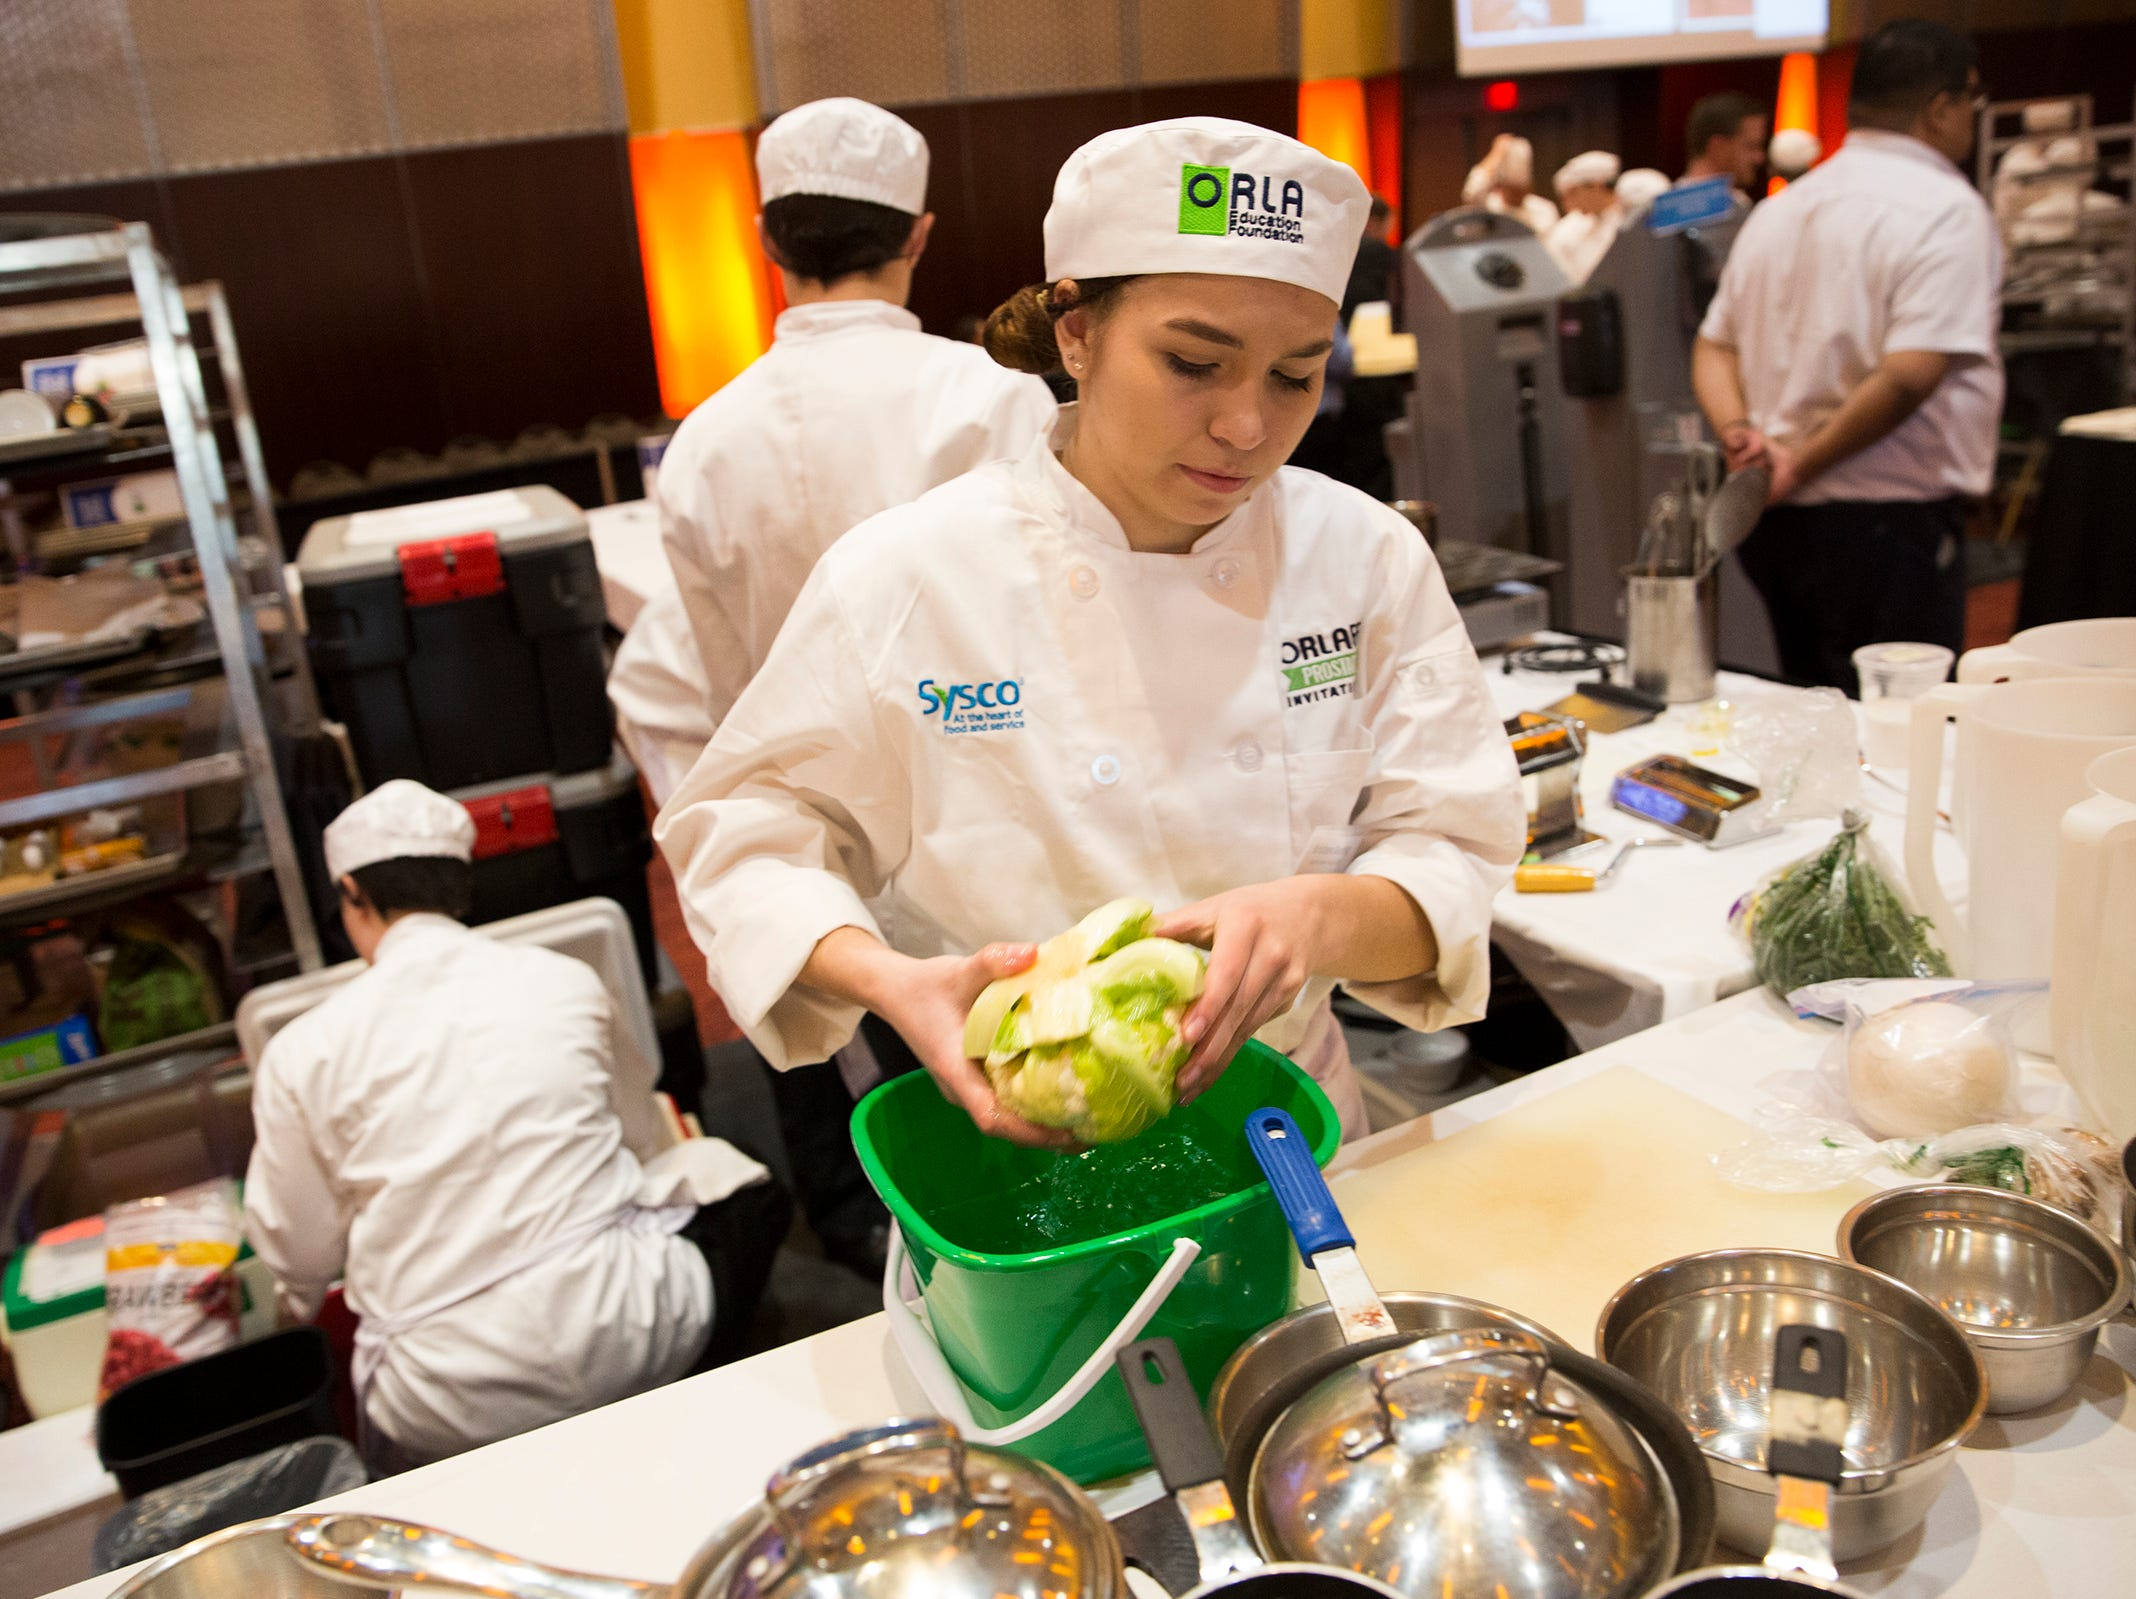 South Salem's Kristen Derting shakes off washed lettuce during the ORLAEF's ProStart Invitational, a statewide high school culinary competition, at the Salem Convention Center on March 18, 2019.